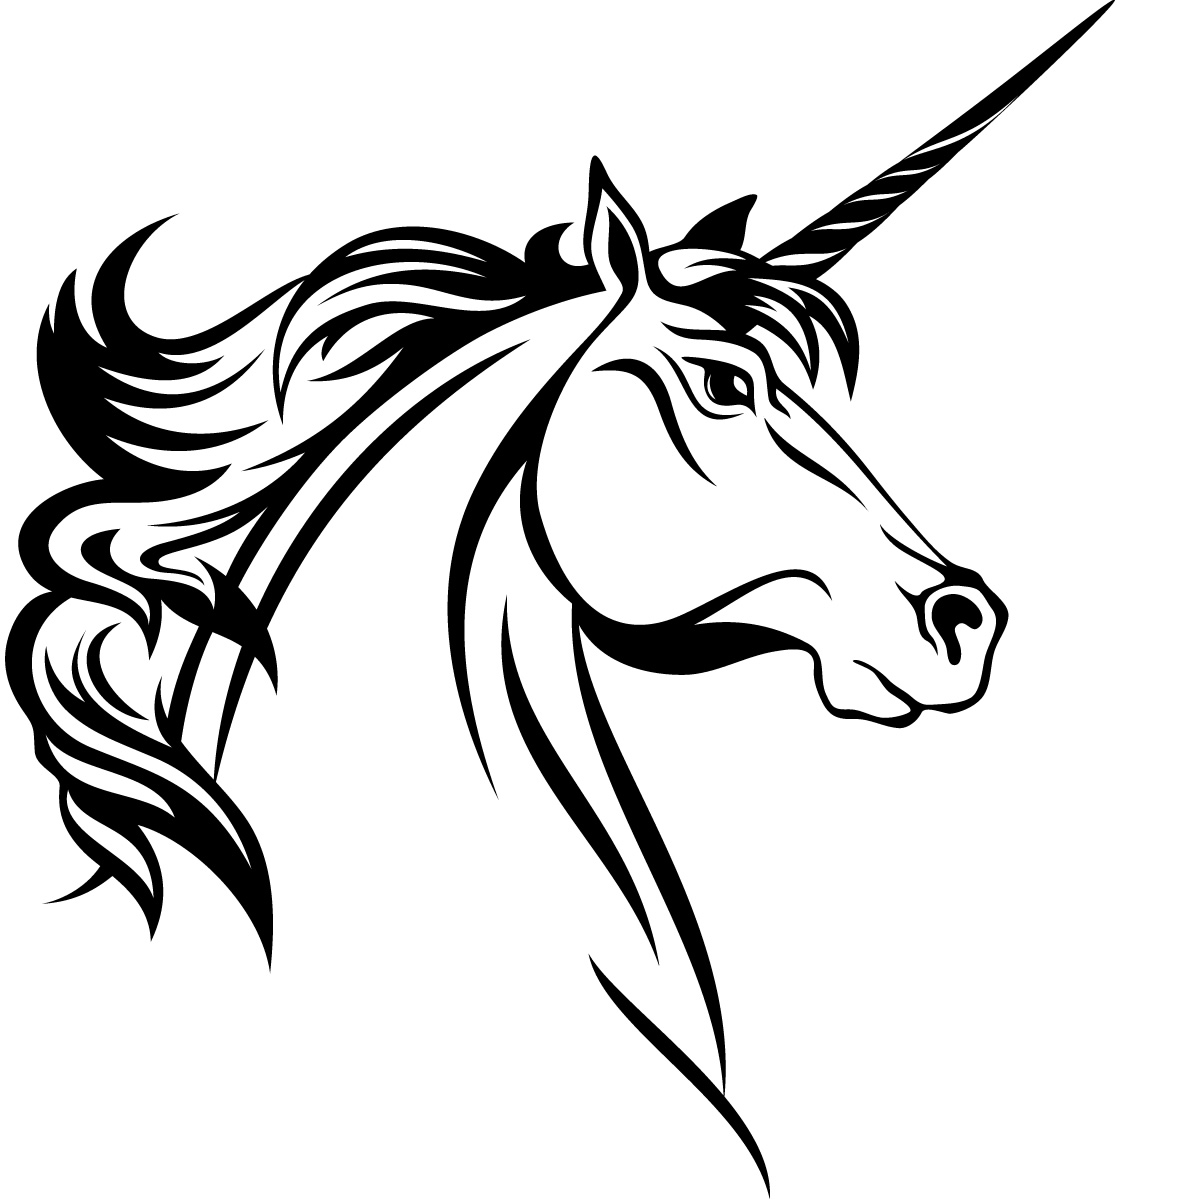 1200x1200 Drawn Horse Unicorn